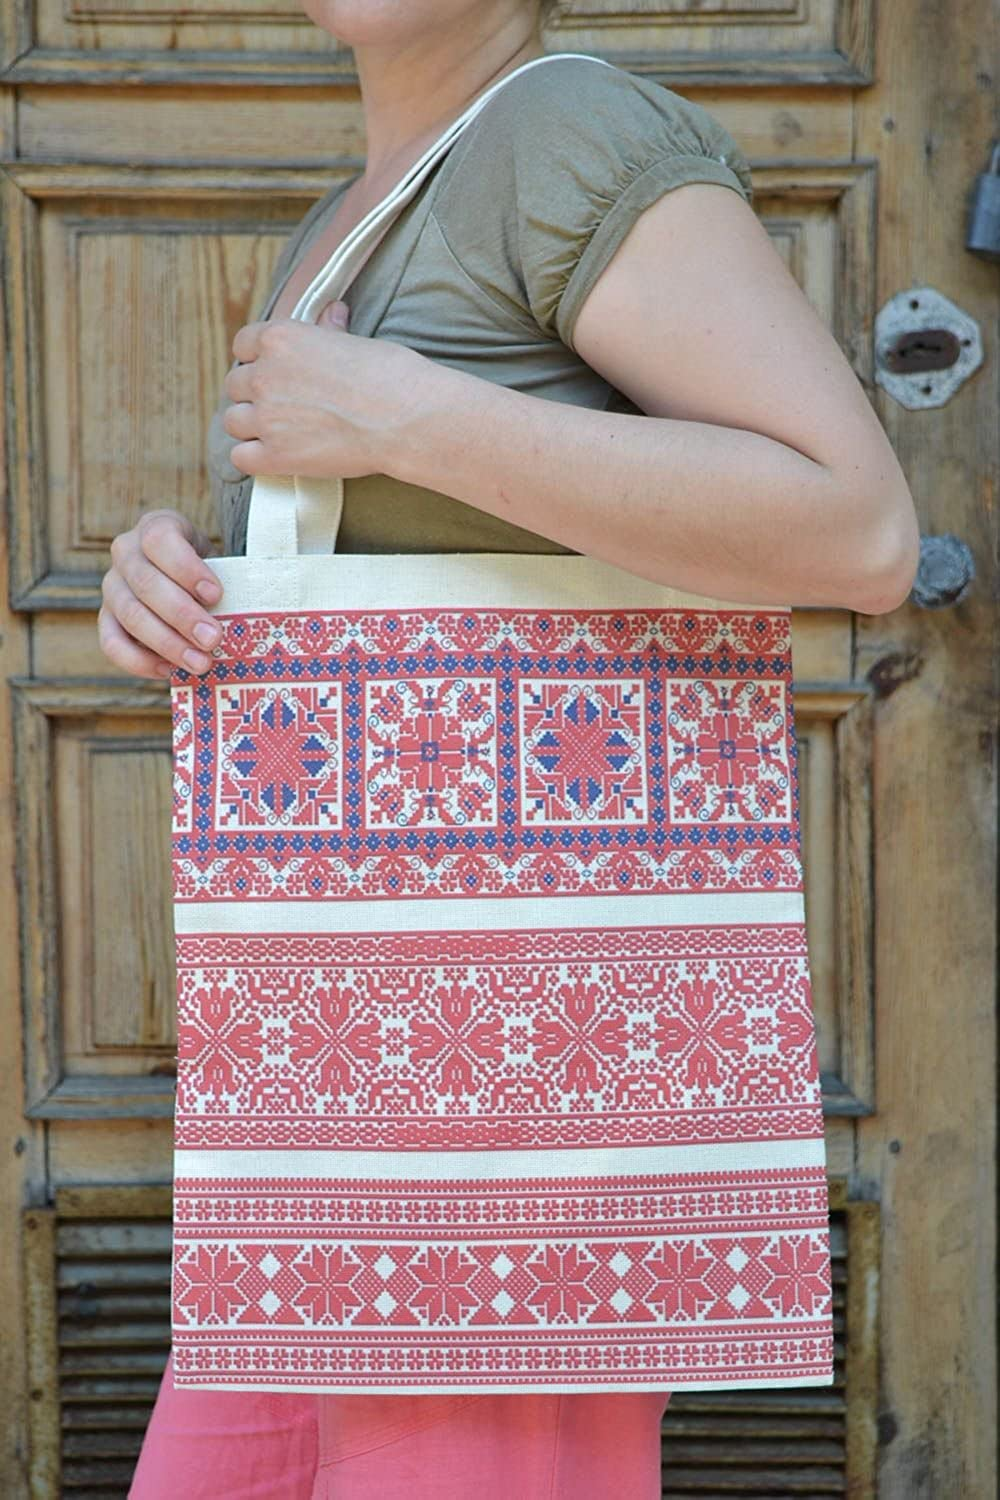 Female Big Handmade Bag Made Of Fabric In Eco Style With Ethnic Painting